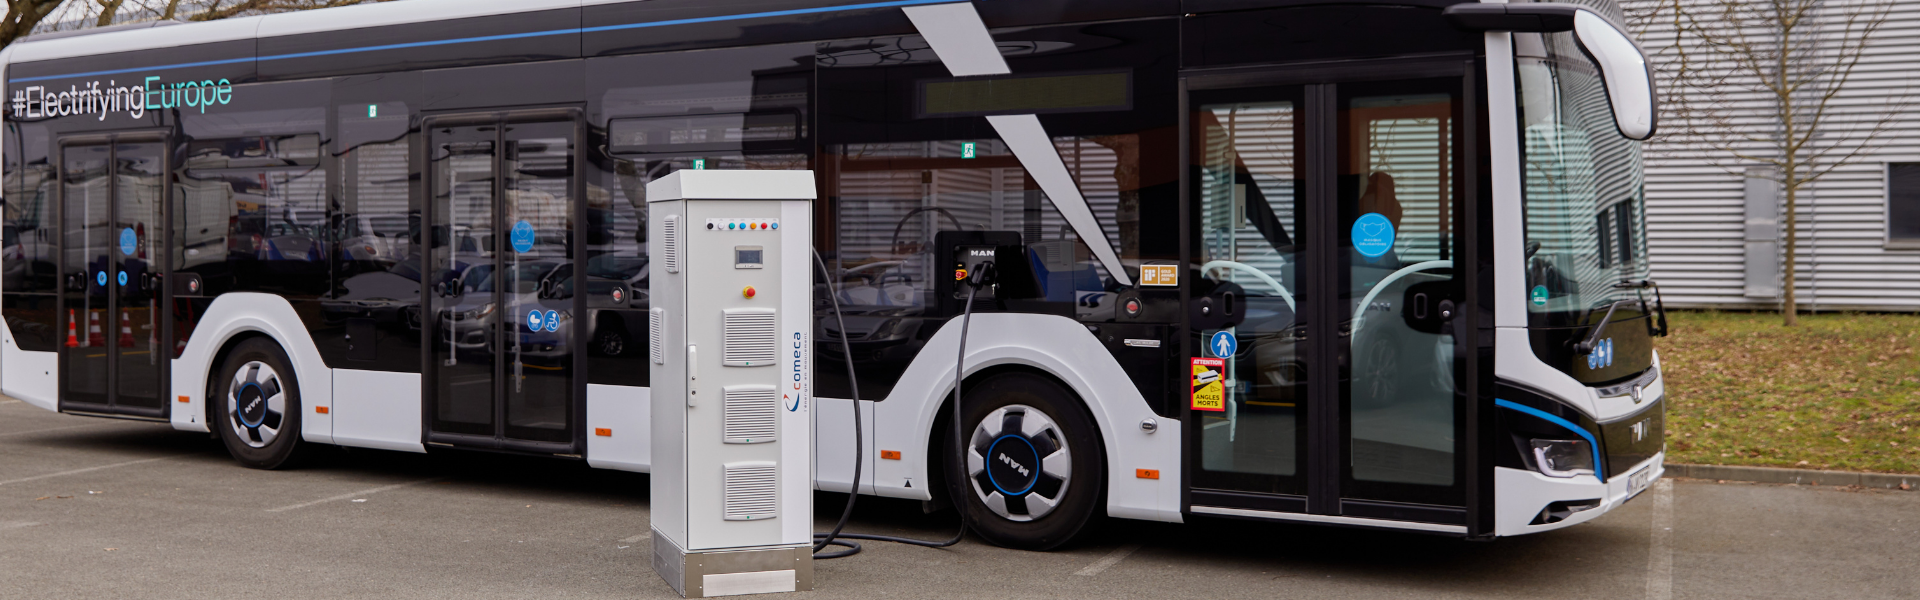 E-MOBILITY & SUSTAINABLE ENERGY by Comeca